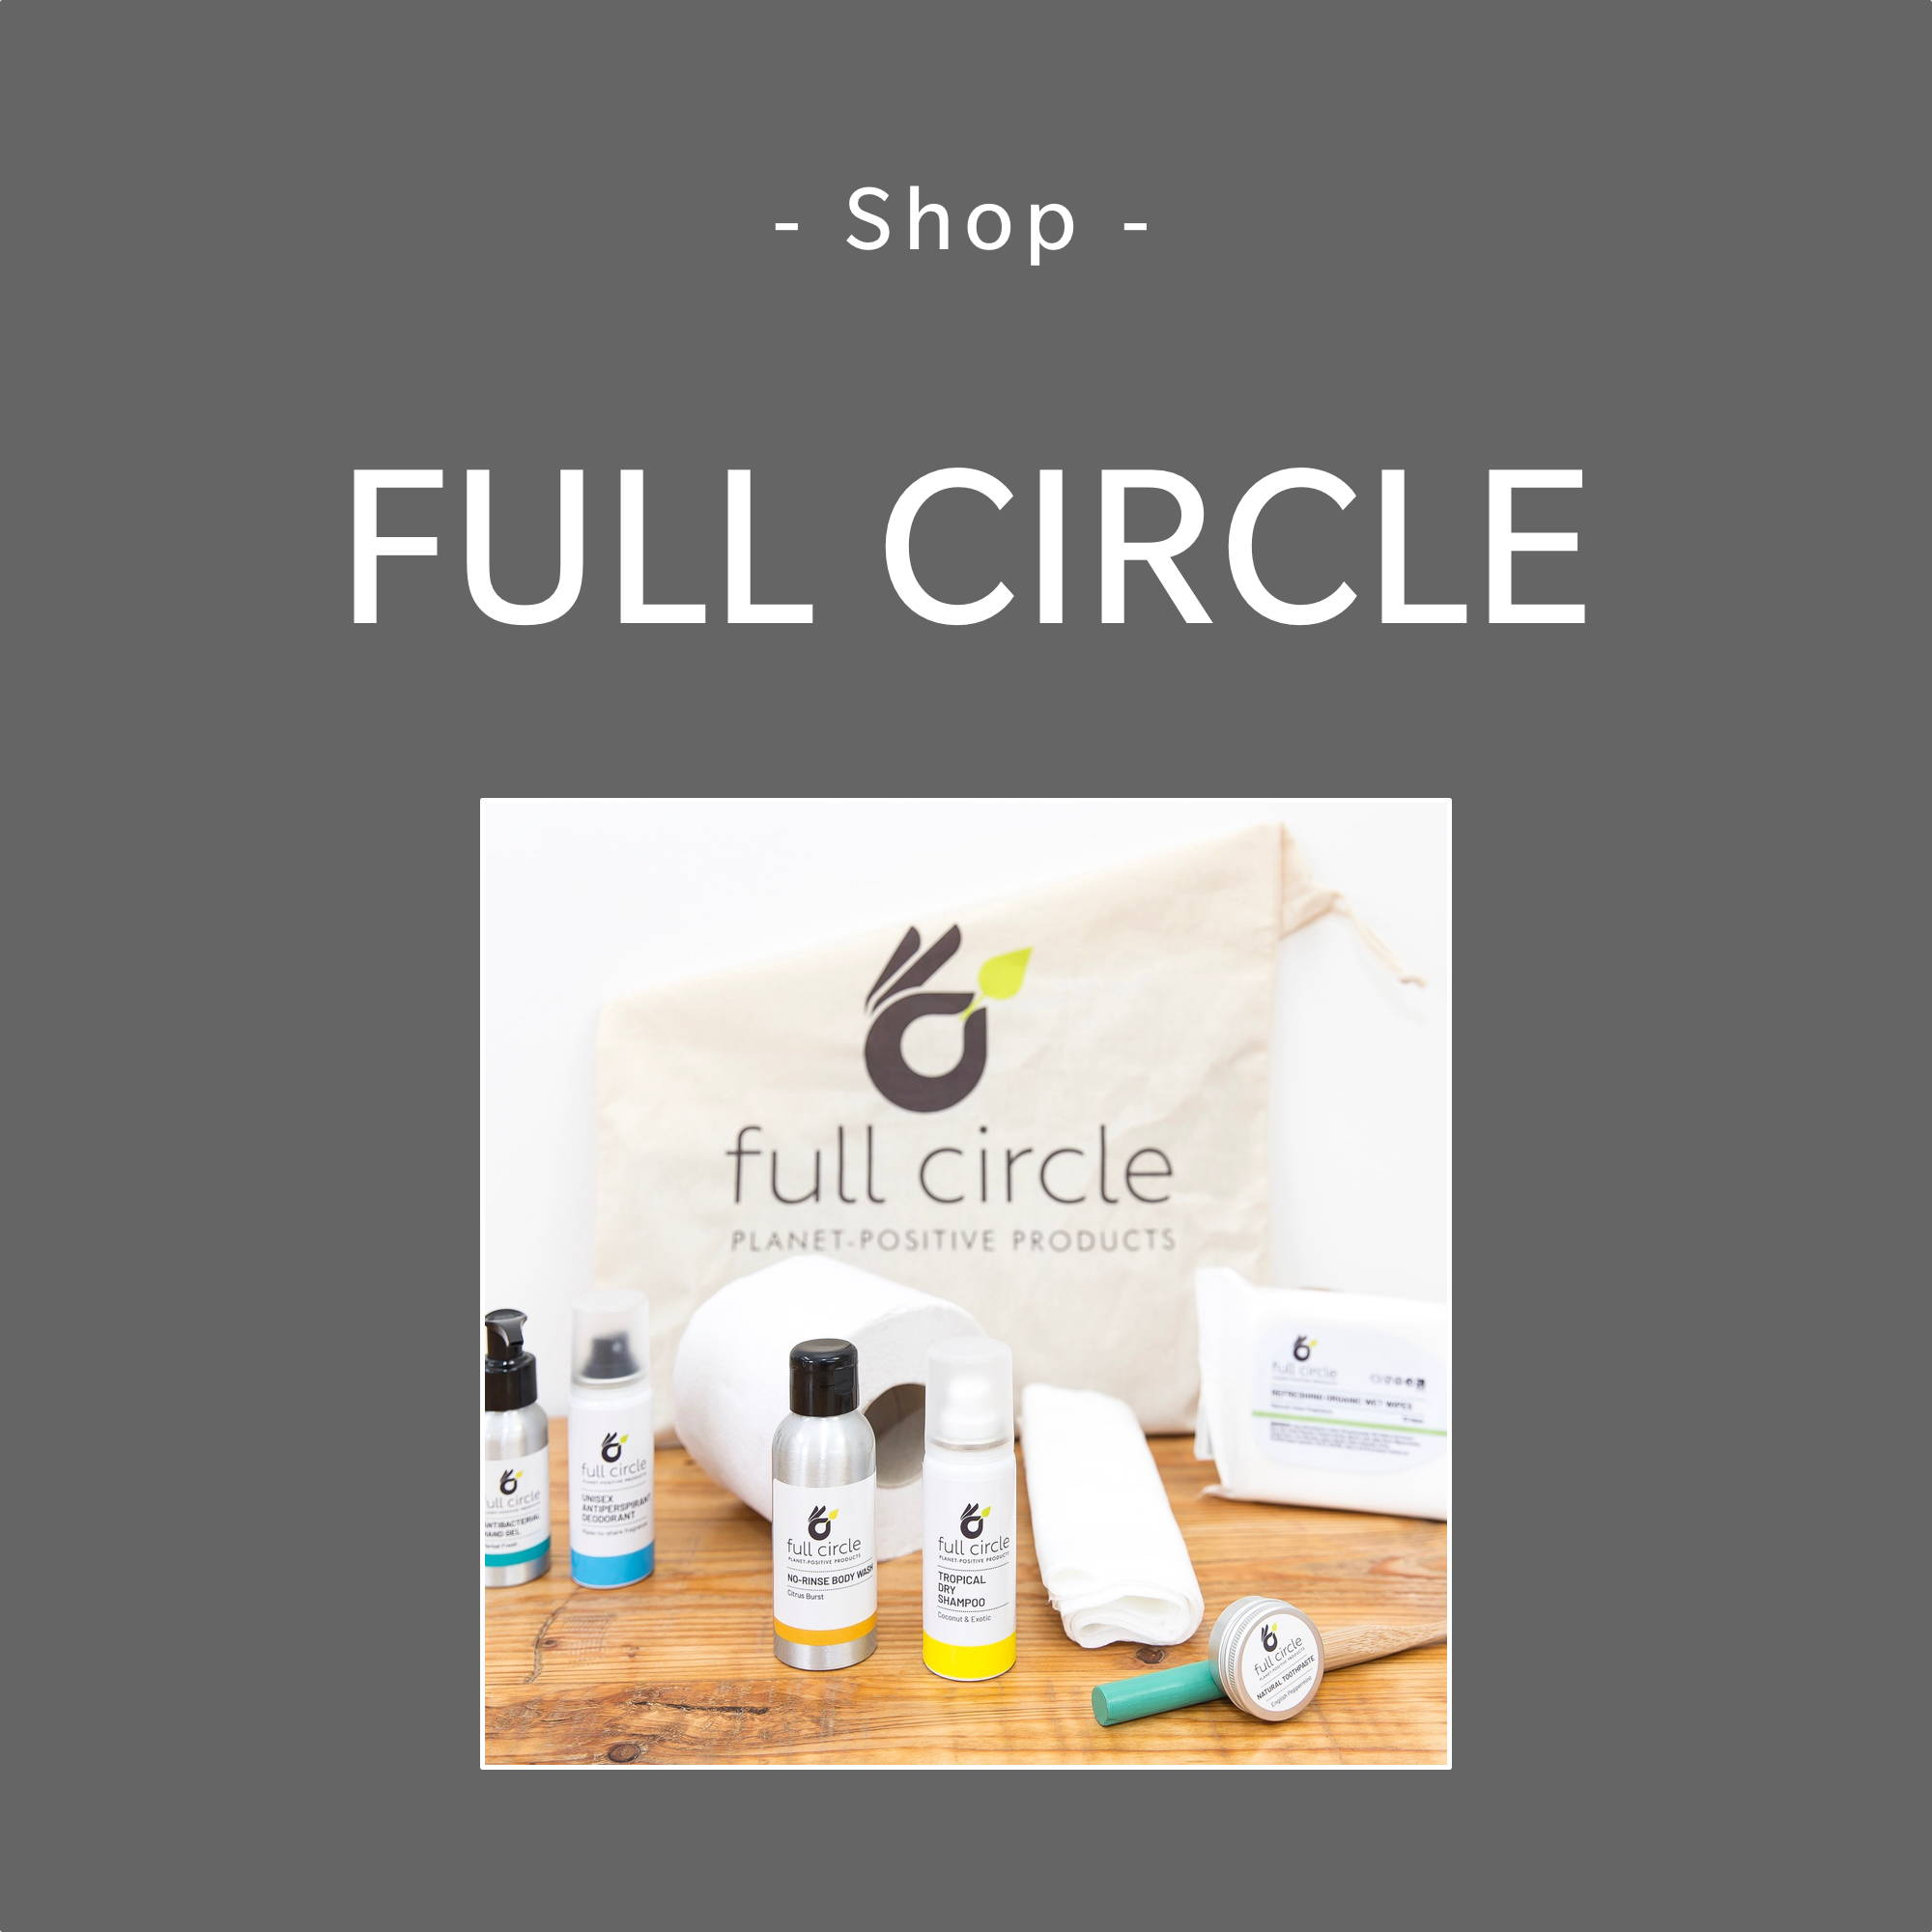 Full Circle Brand Page